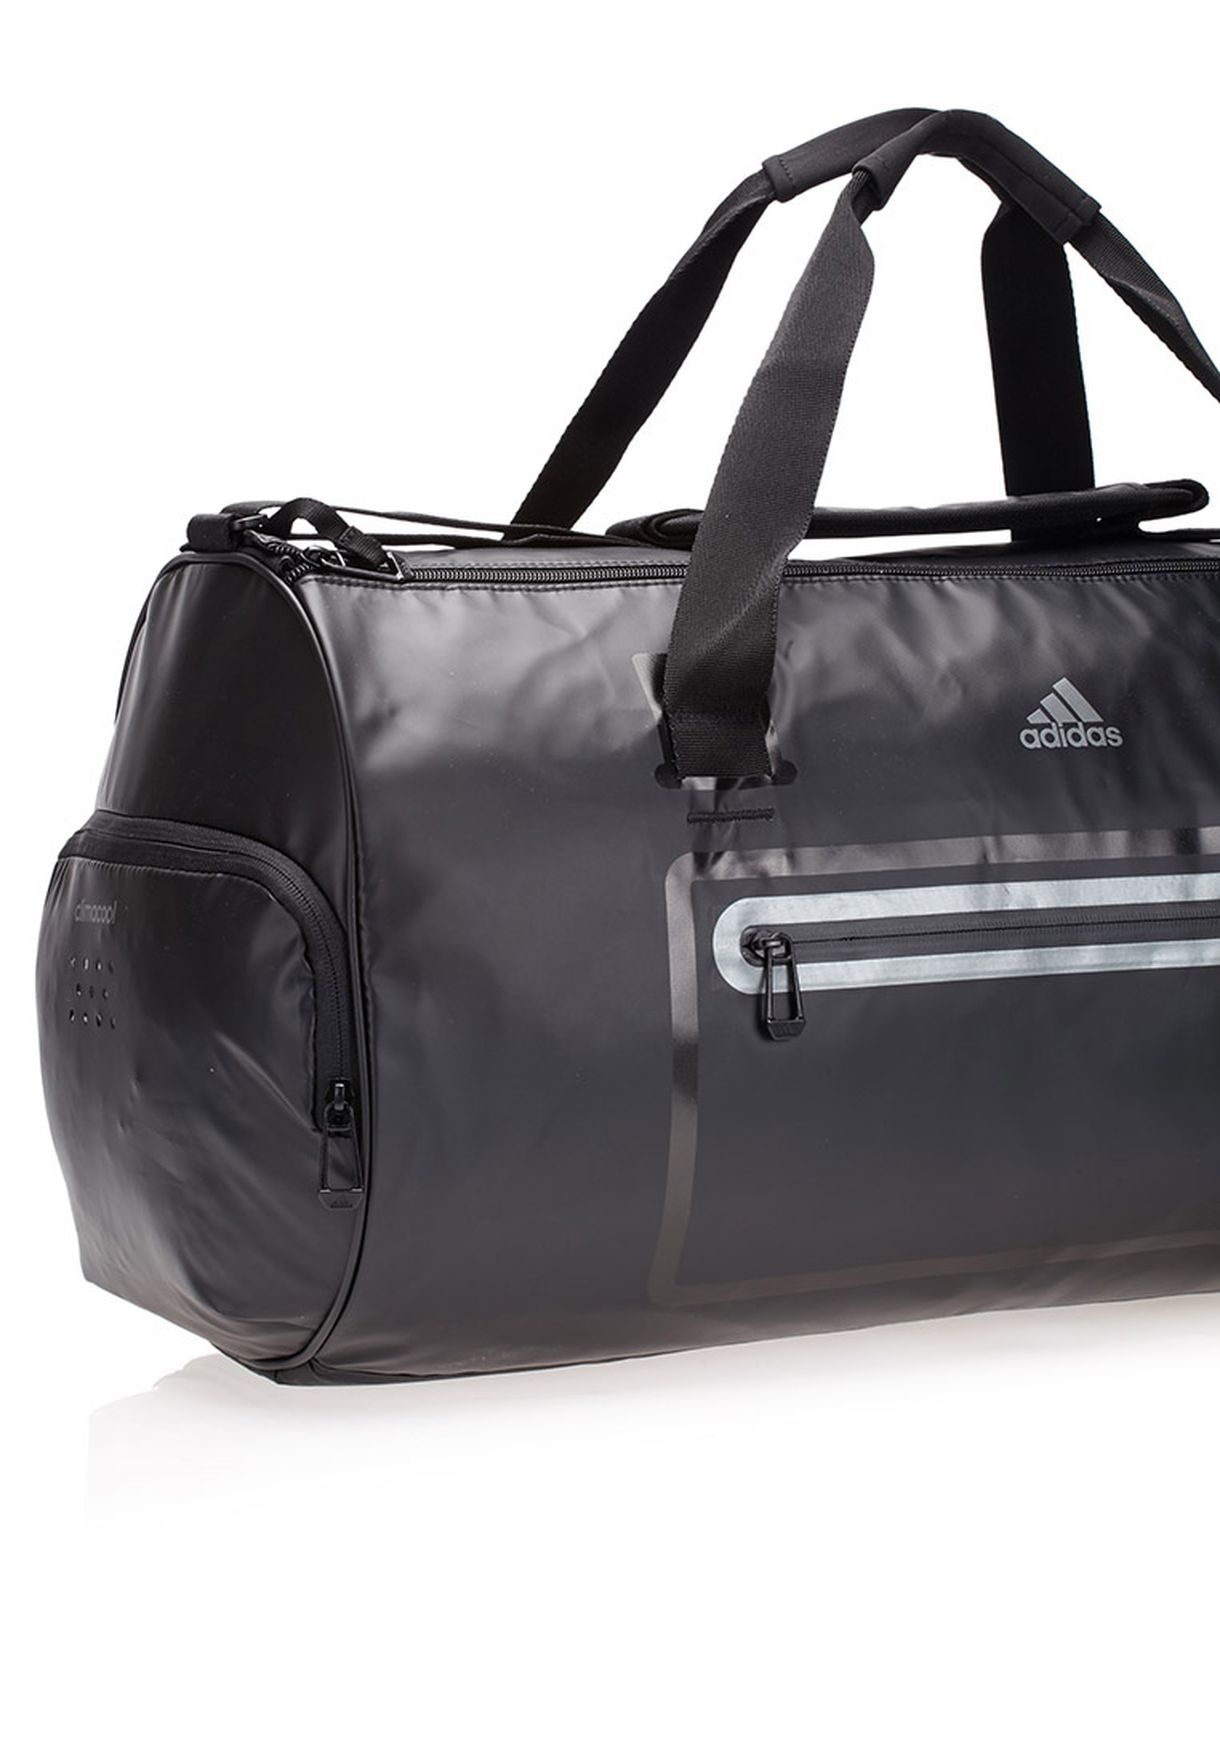 d0bd6ded5b7f Shop adidas black Medium Climacool Duffel Bag S18198 for Men in UAE ...